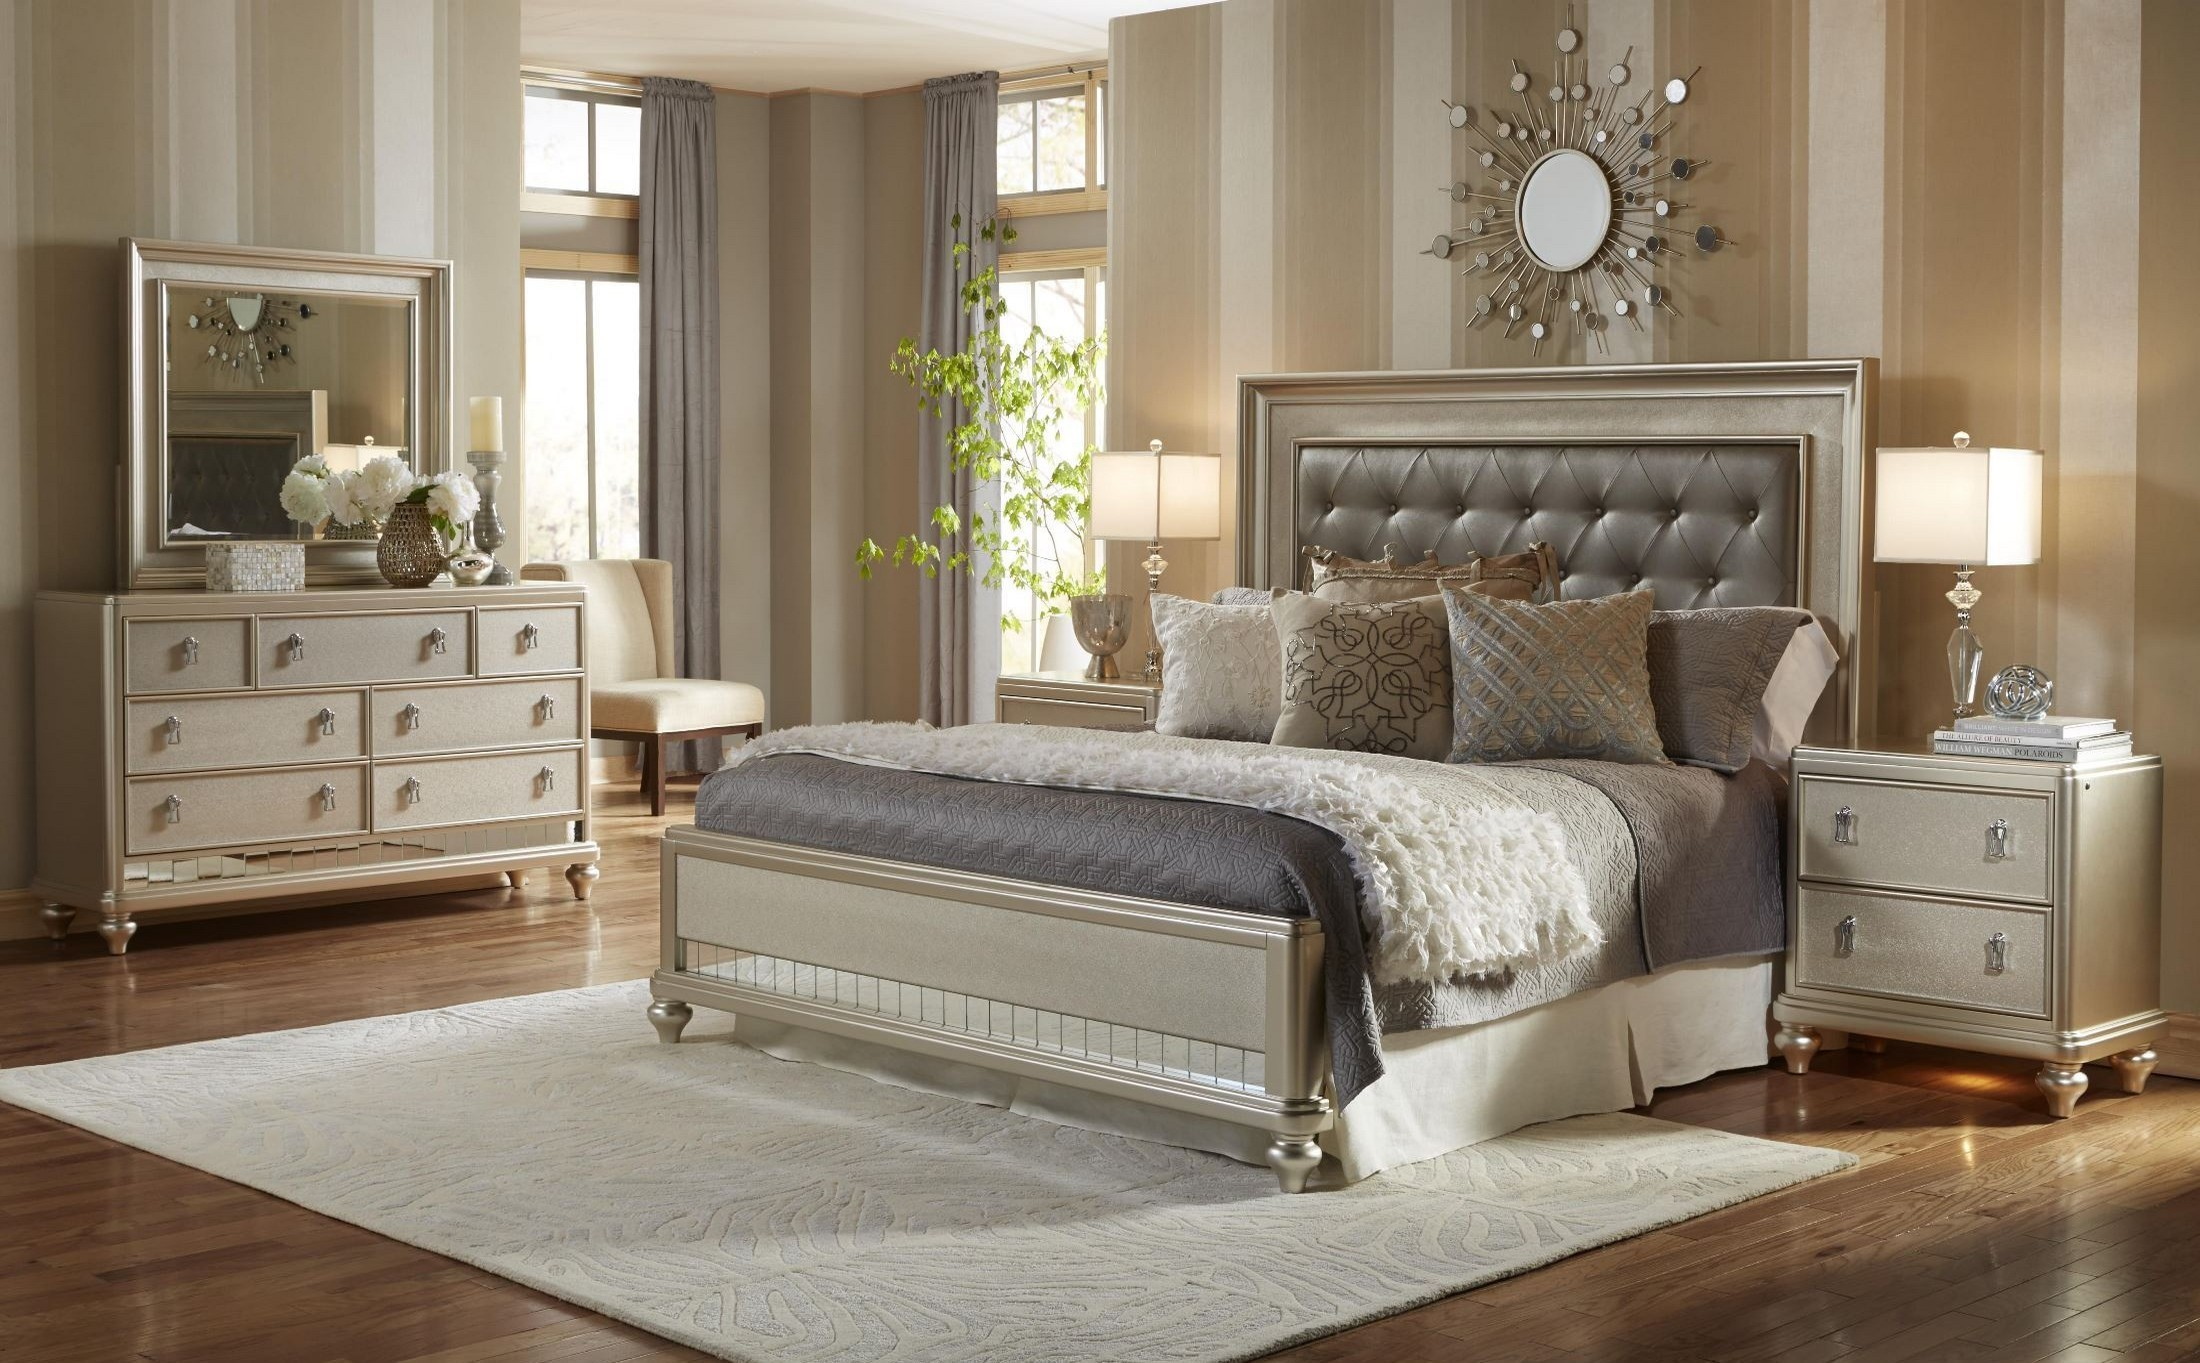 California King Bedroom Set. Diva Metallic Panel Bedroom Set from Samuel Lawrence  8808 255 257 400